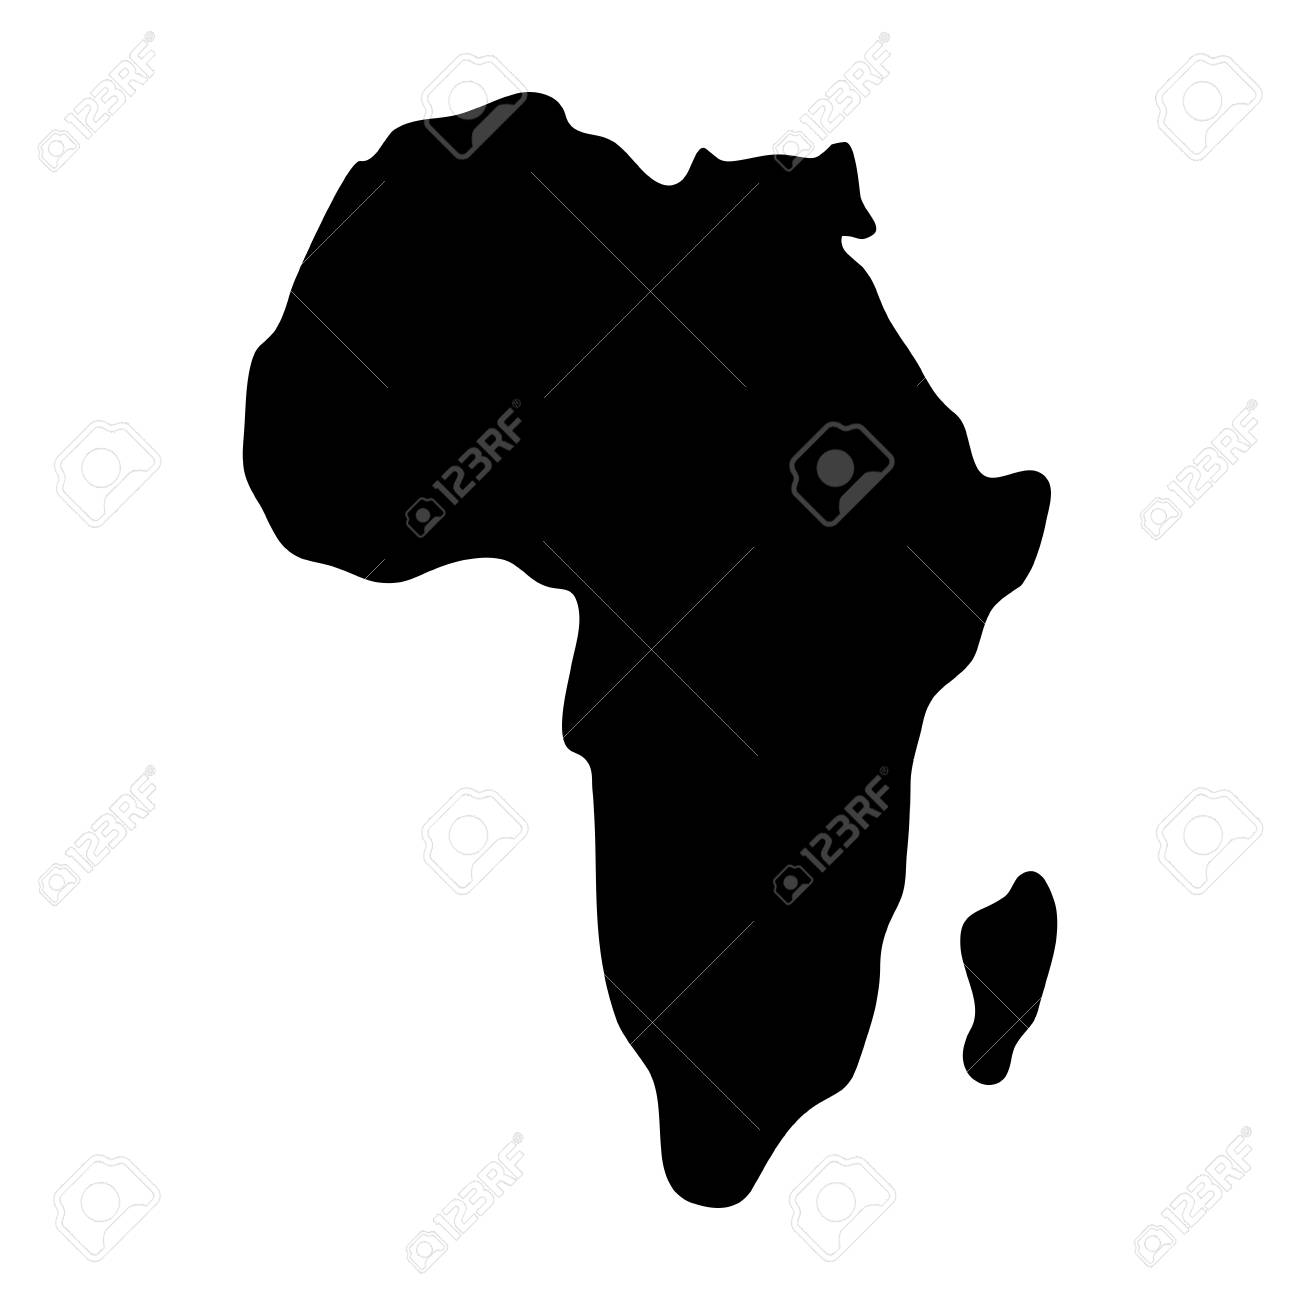 Africa Map Silhouette Vector.African Continent Map Silhouette Vector Illustration Design